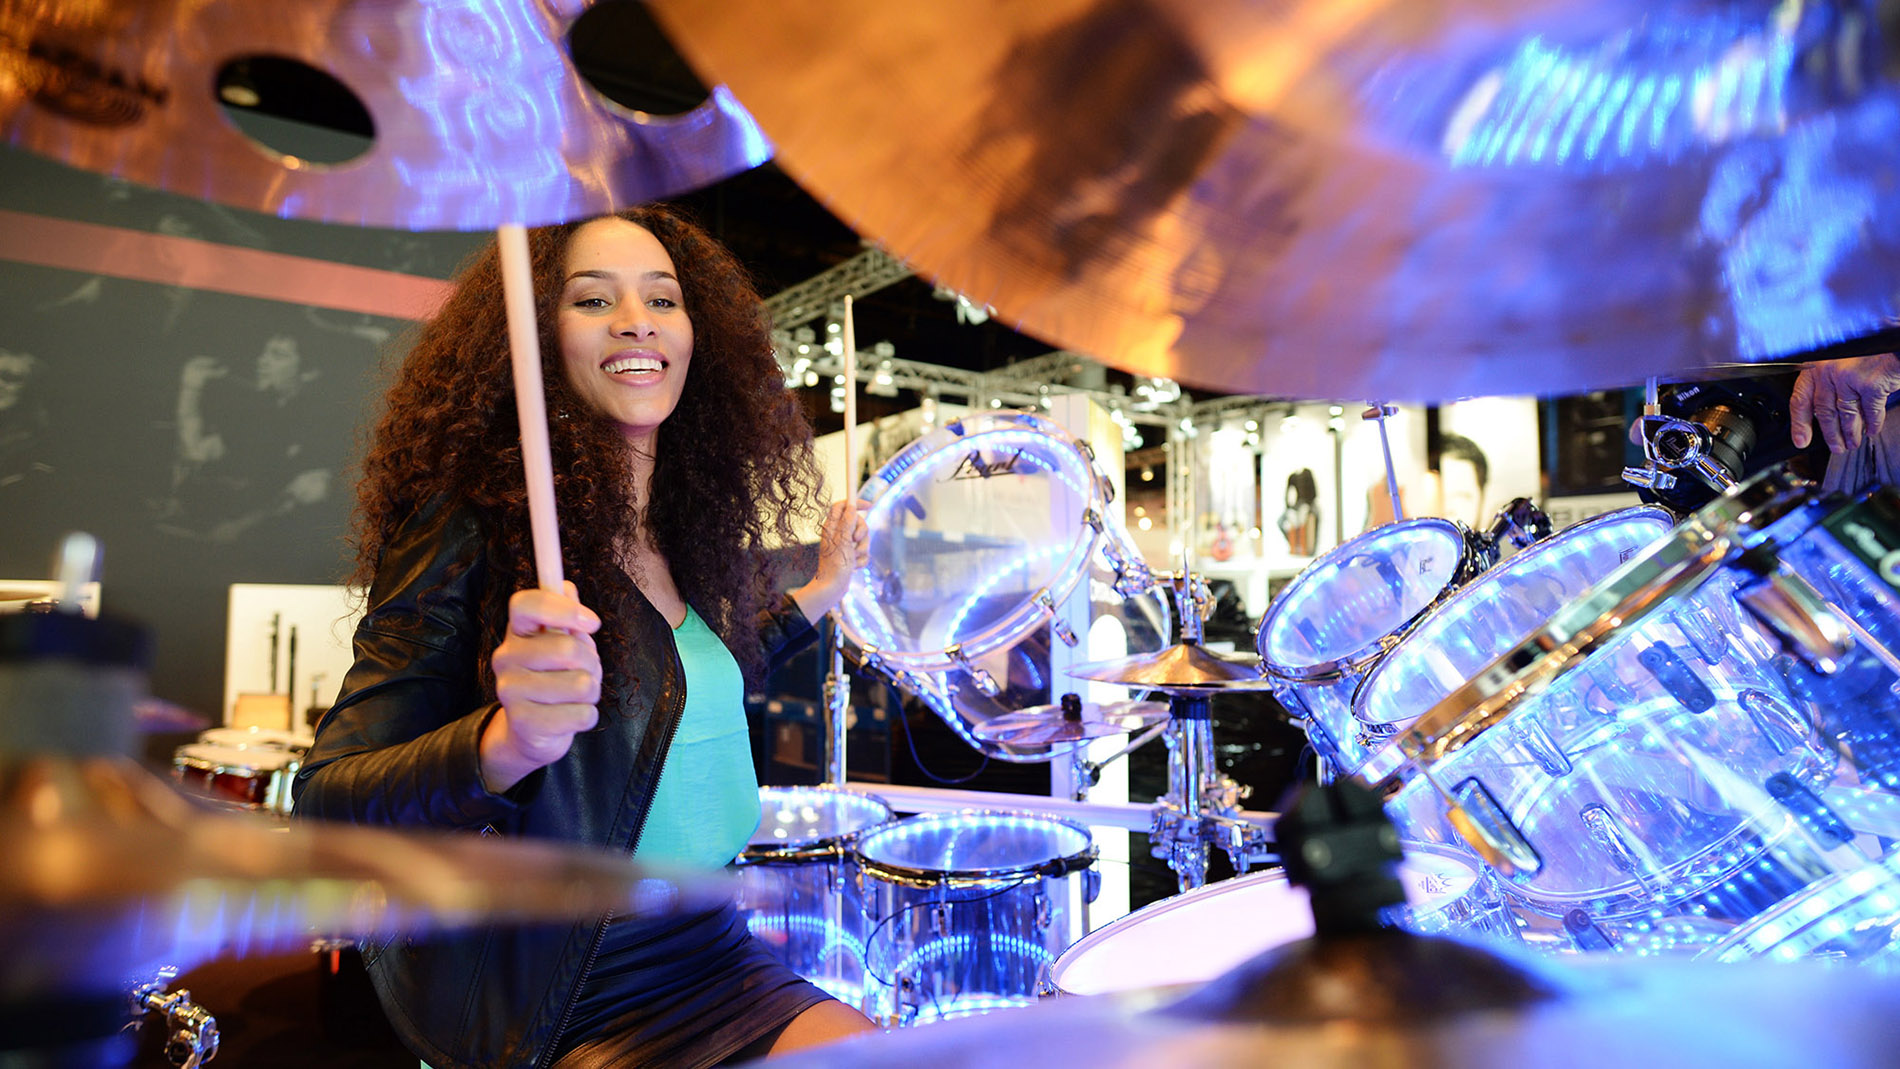 Woman plays drums